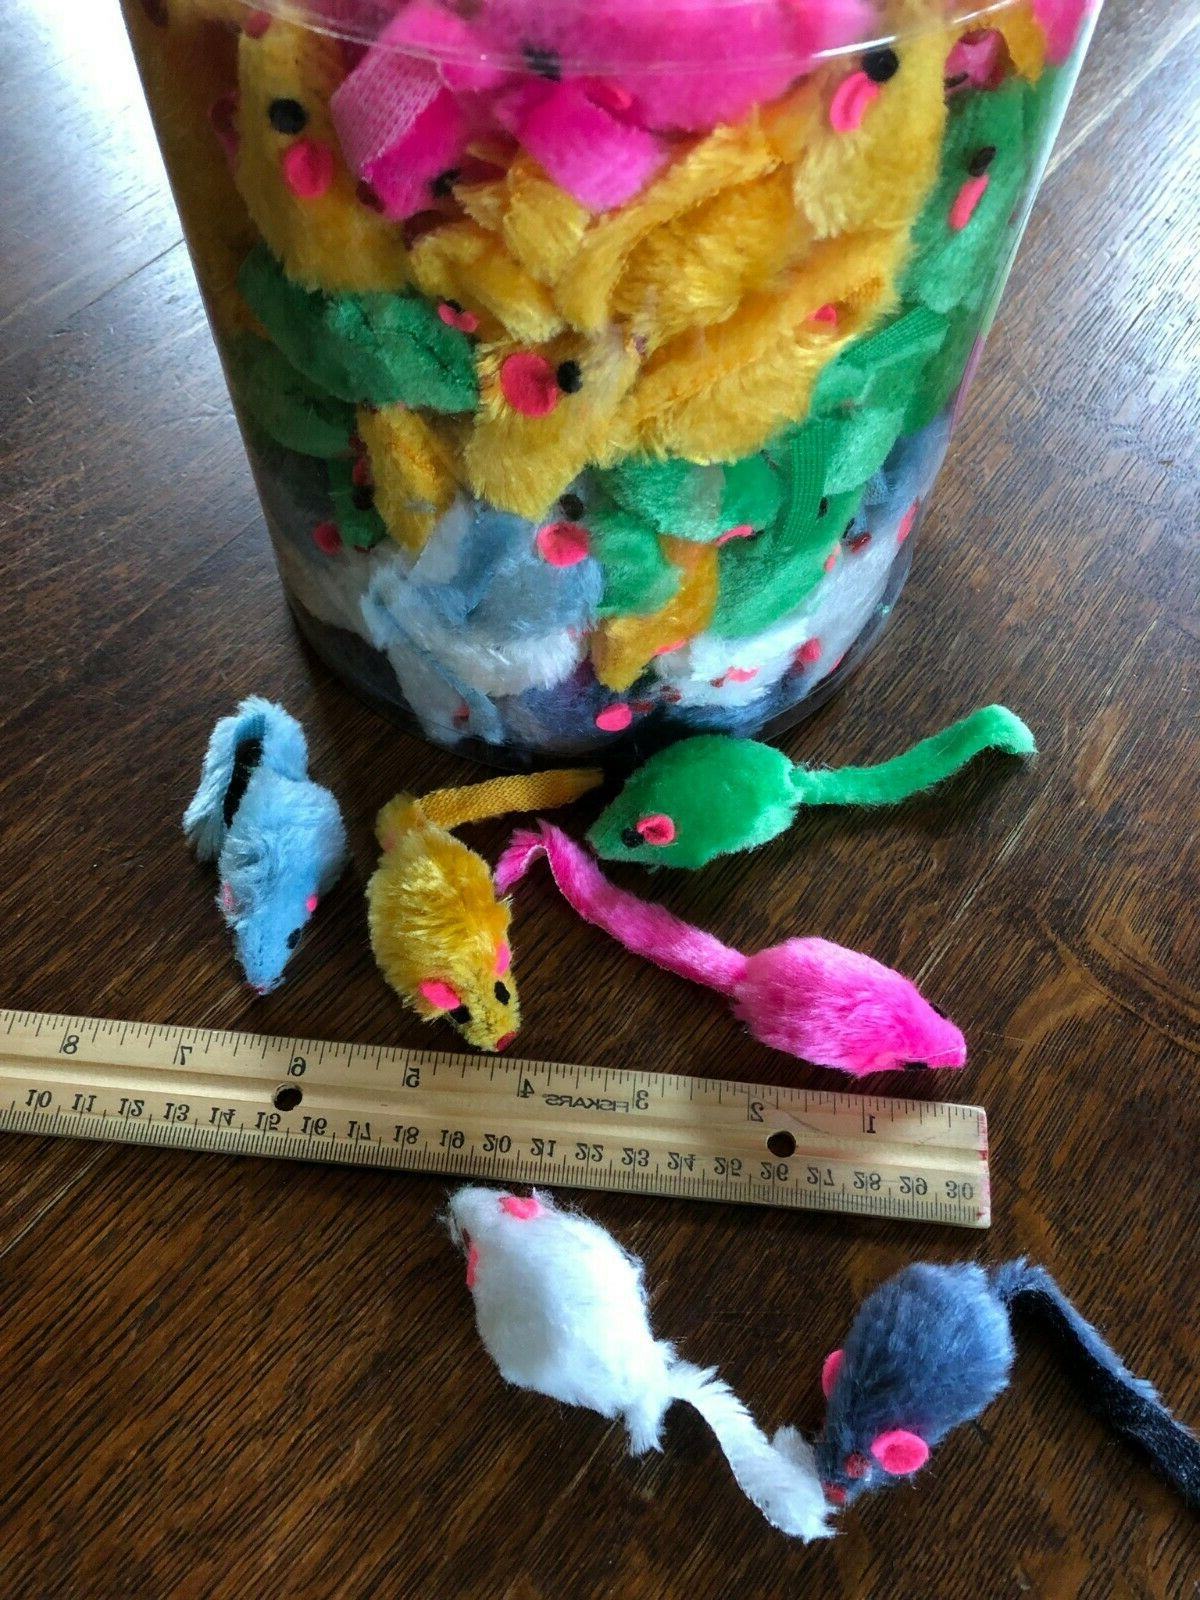 "2"" CAT TOYS Rattles Humane Fuzzy Fur Fake Mice Lots"